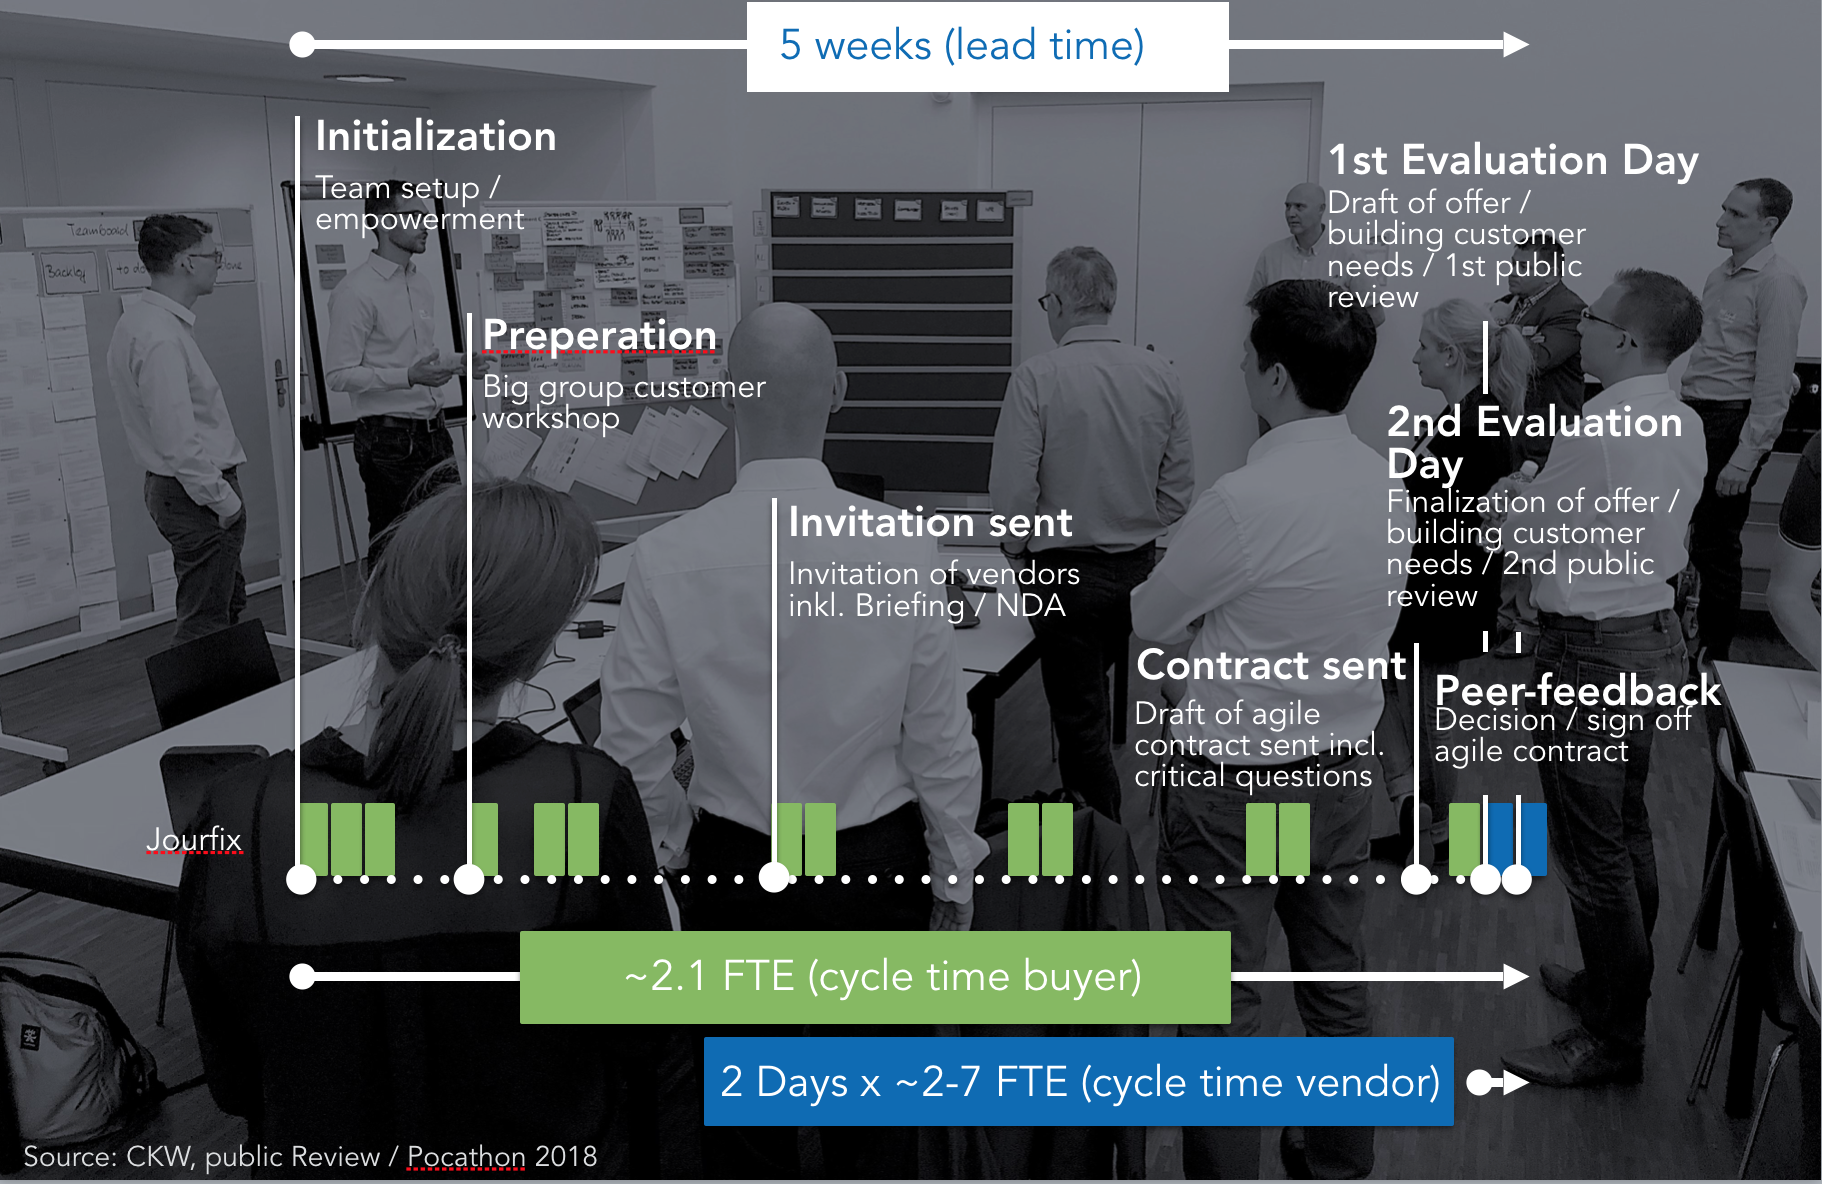 approach-n-timing-ckw-lean-agile-procurement.png